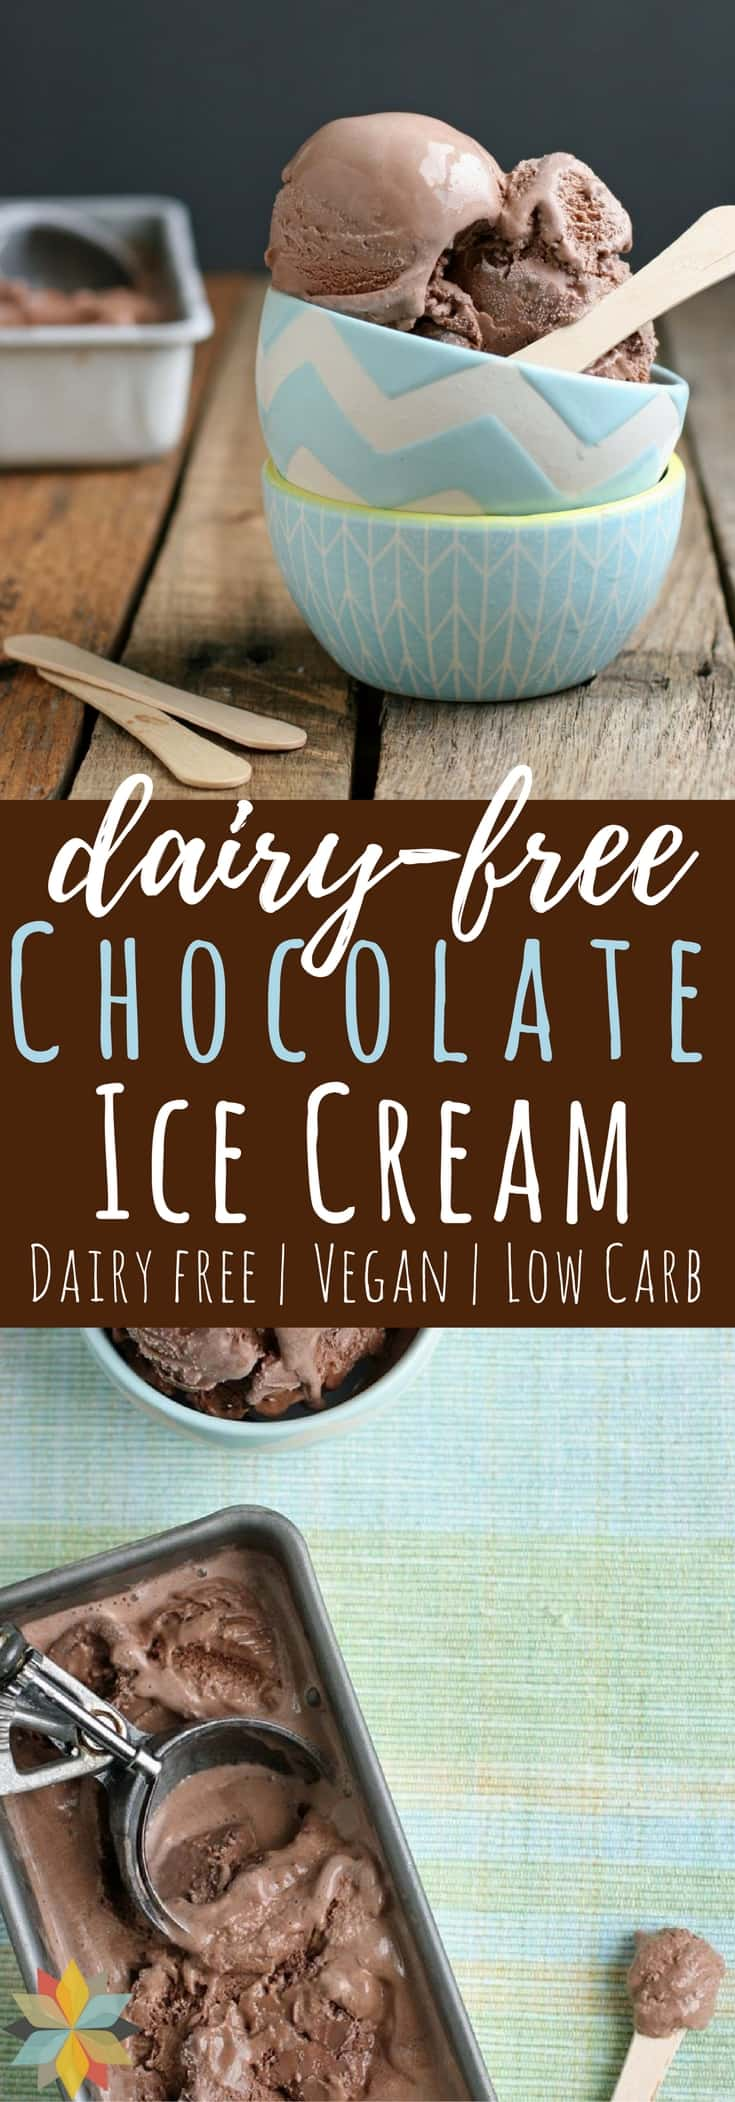 Chocolate Coconut Milk Ice Cream - vegan, dairy free, low carb, AIP, and THM:S!